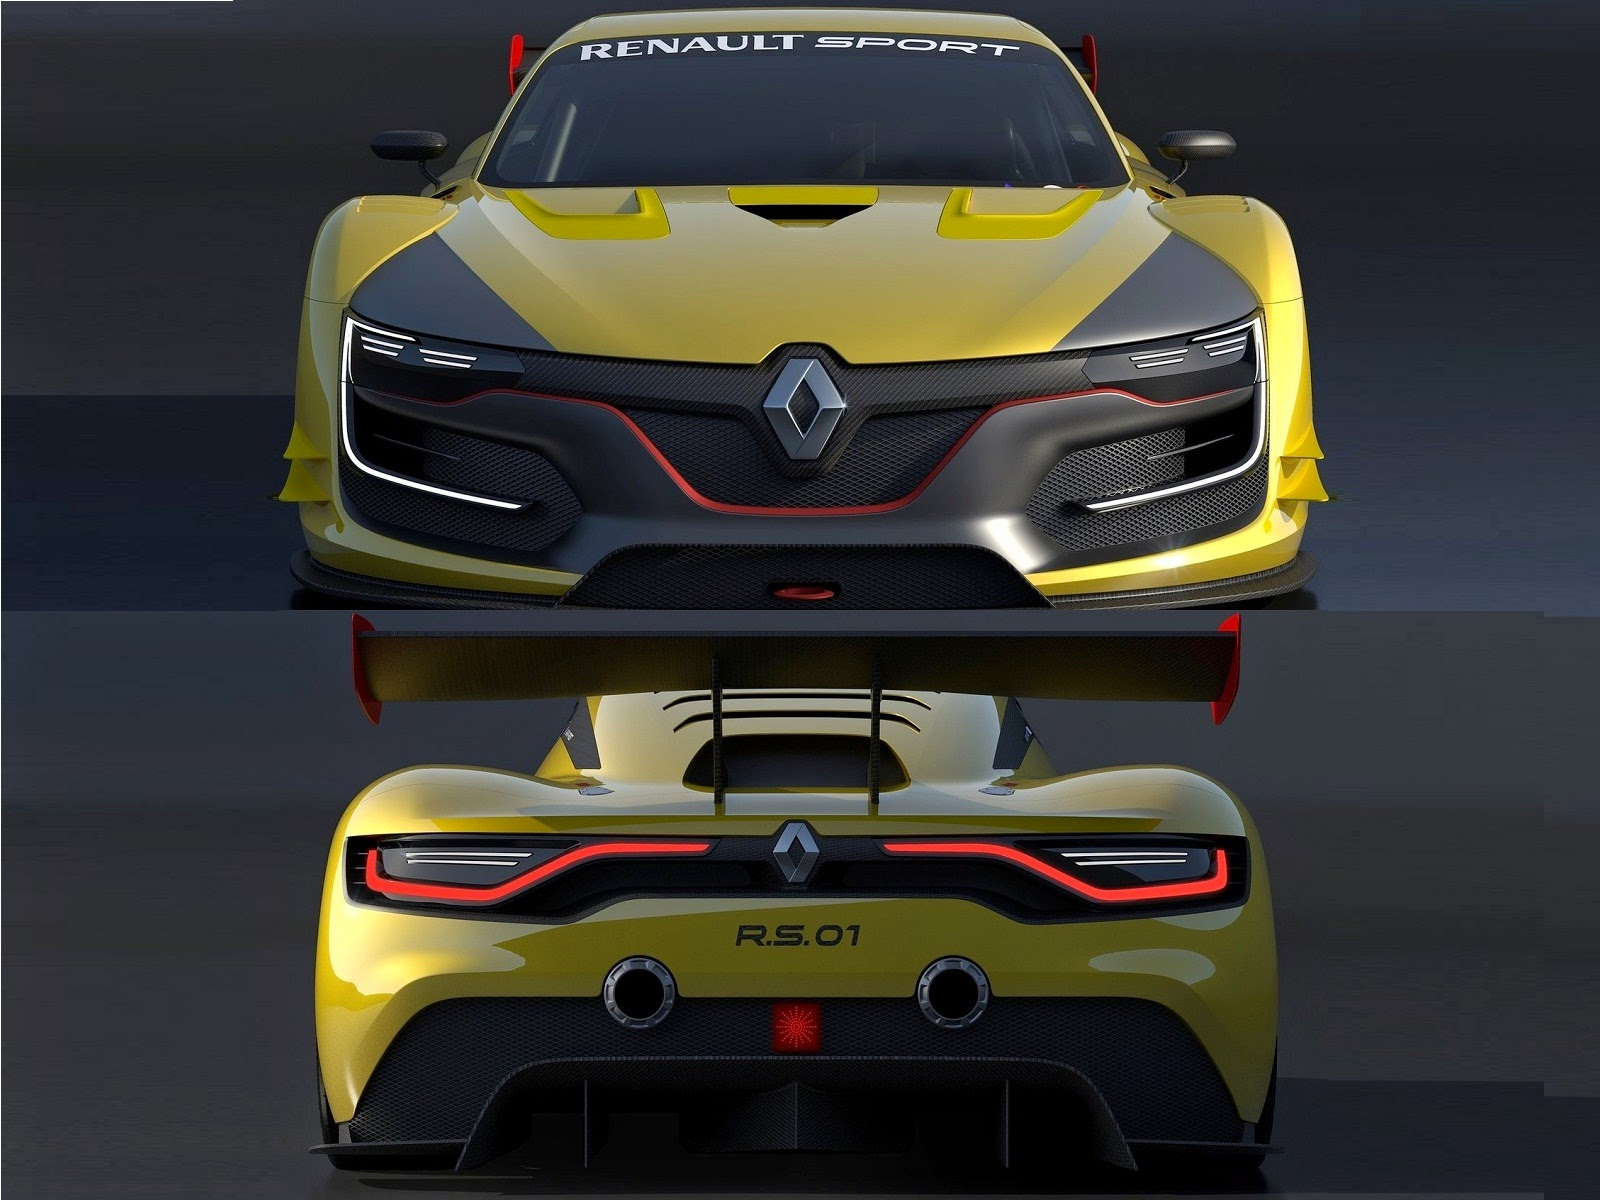 renault sport r s 01 a racing car of spectacular design built for performance car reviews. Black Bedroom Furniture Sets. Home Design Ideas